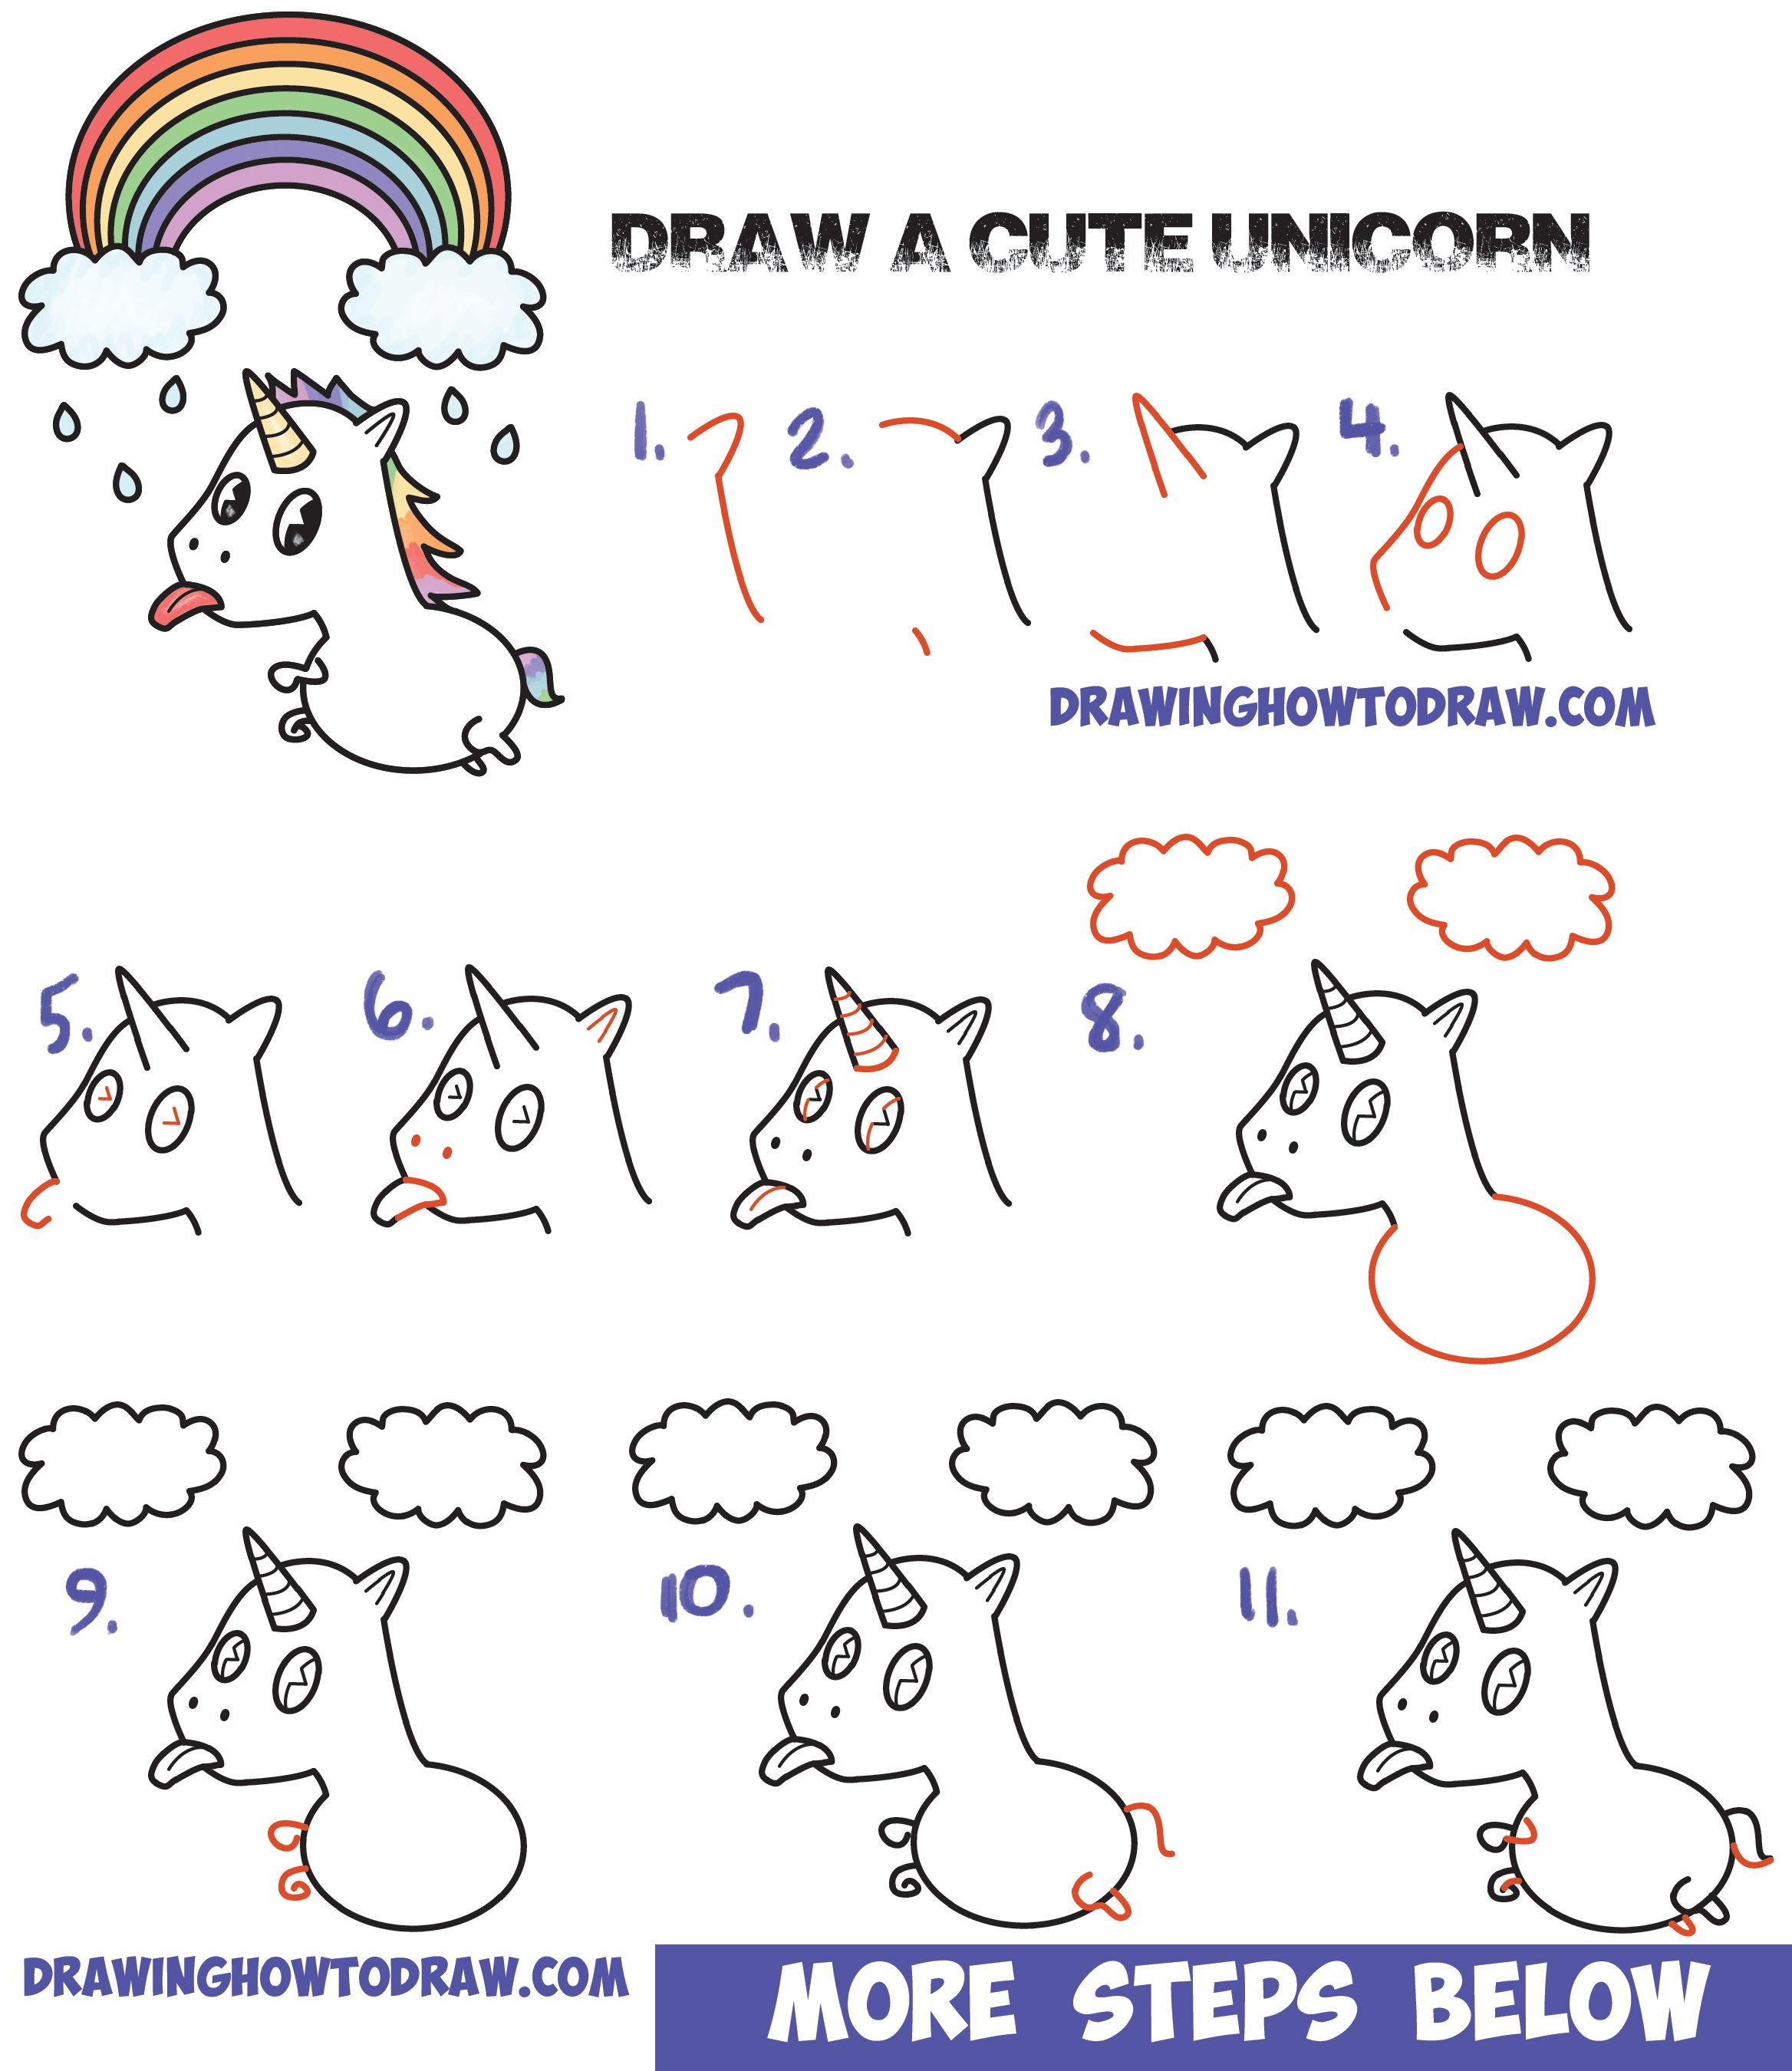 How To Draw A Cute Kawaii Unicorn With Tongue Out Under Rainbow Easy